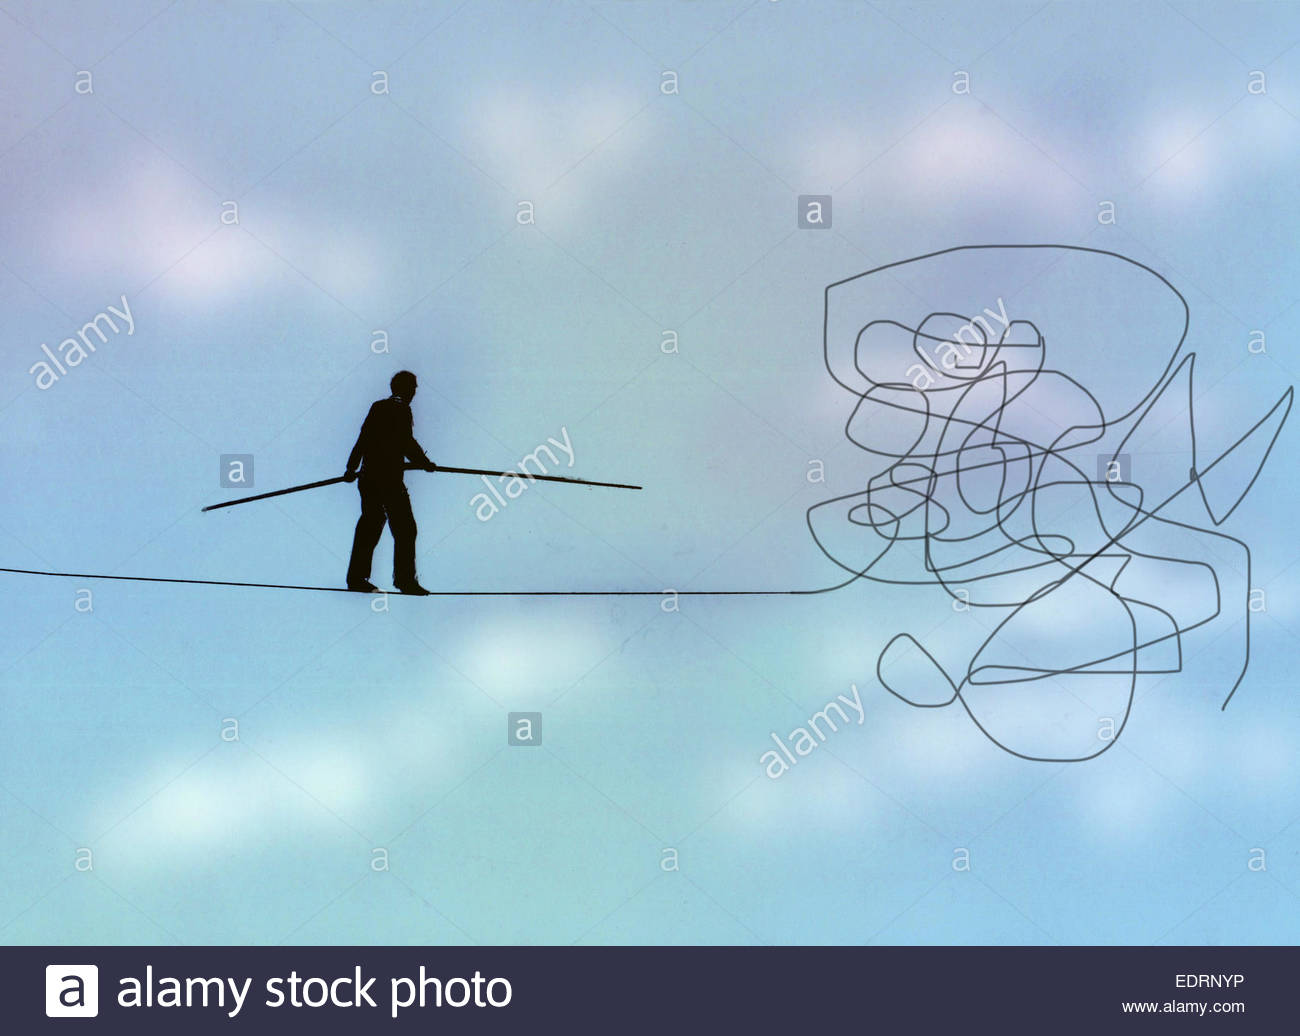 L'homme approche de noeud sur tangled tightrope Photo Stock